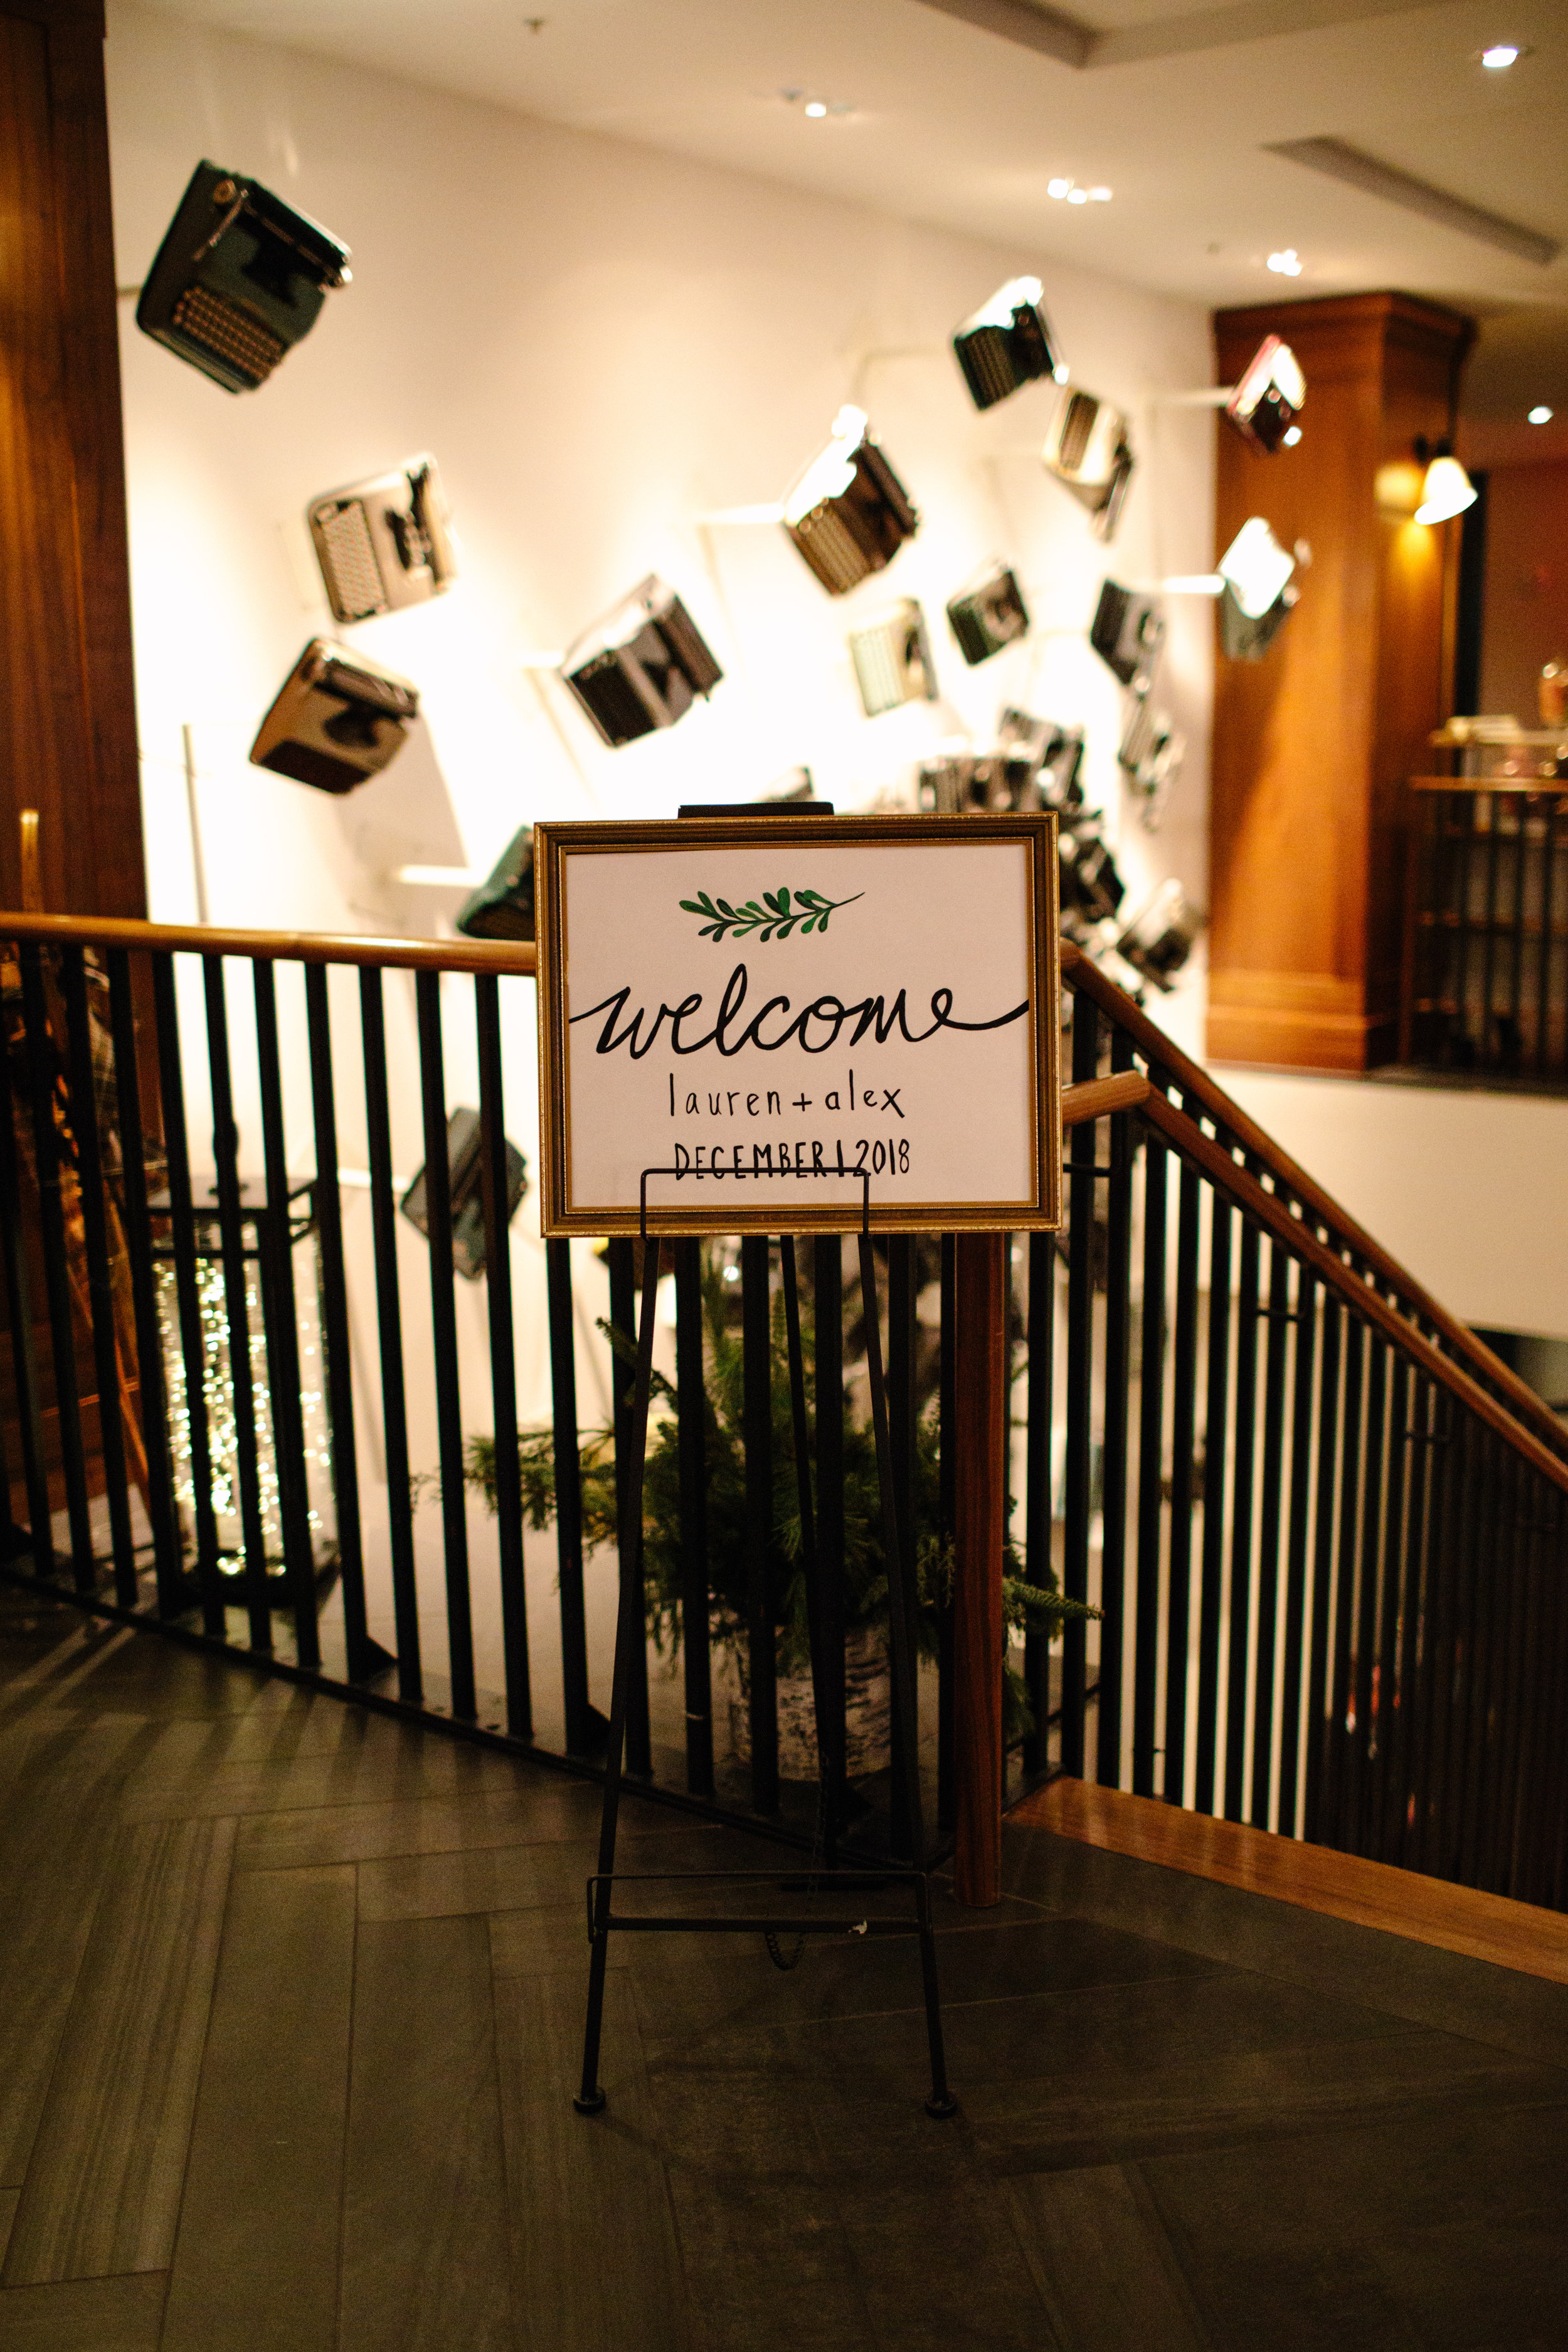 press-hotel-wedding-welcome-sign